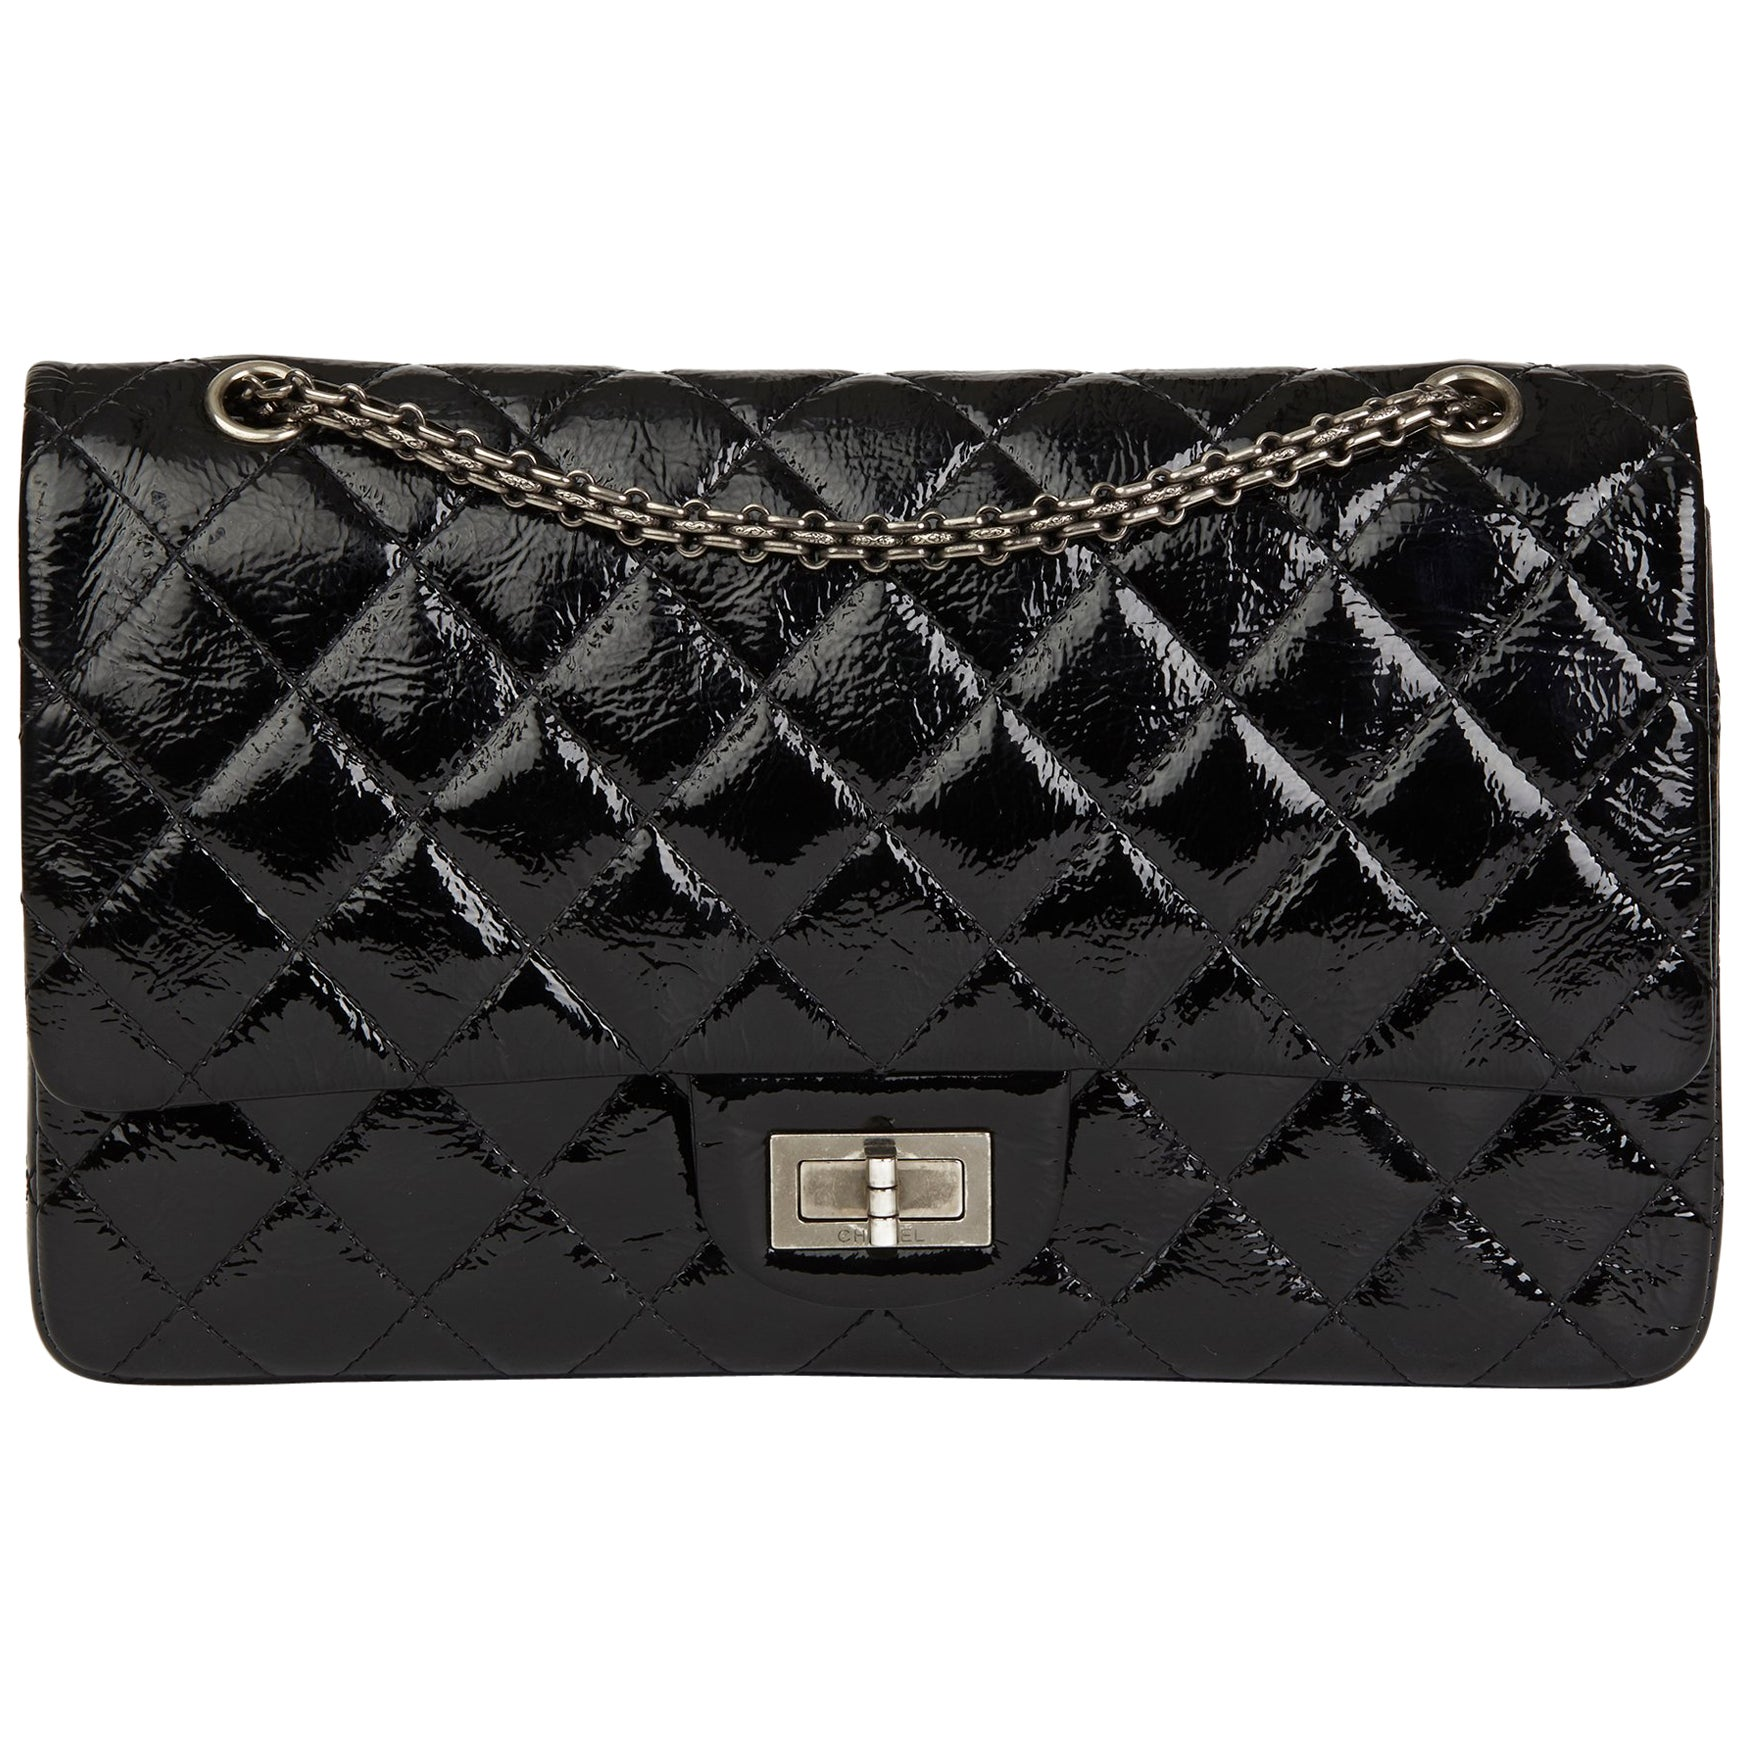 f6a4a338e2ae81 2010 Chanel Black Quilted Aged Patent Leather 2.55 Reissue 227 Double Flap  Bag at 1stdibs